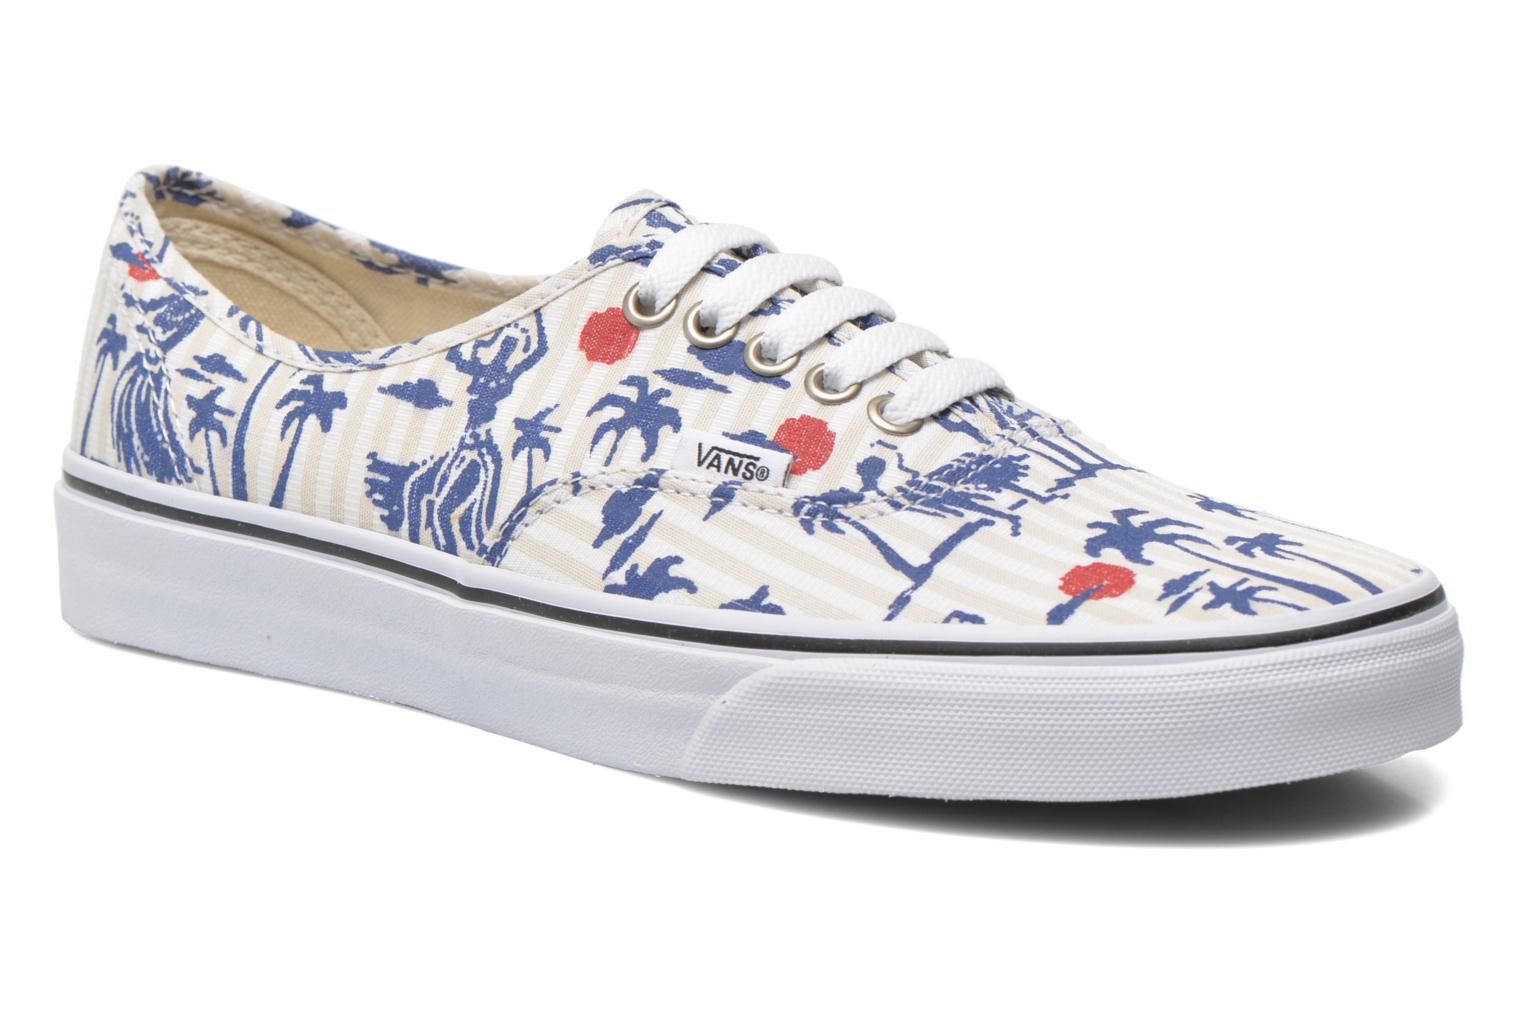 Marques Chaussure homme Vans homme Authentic (hula stripes) True White